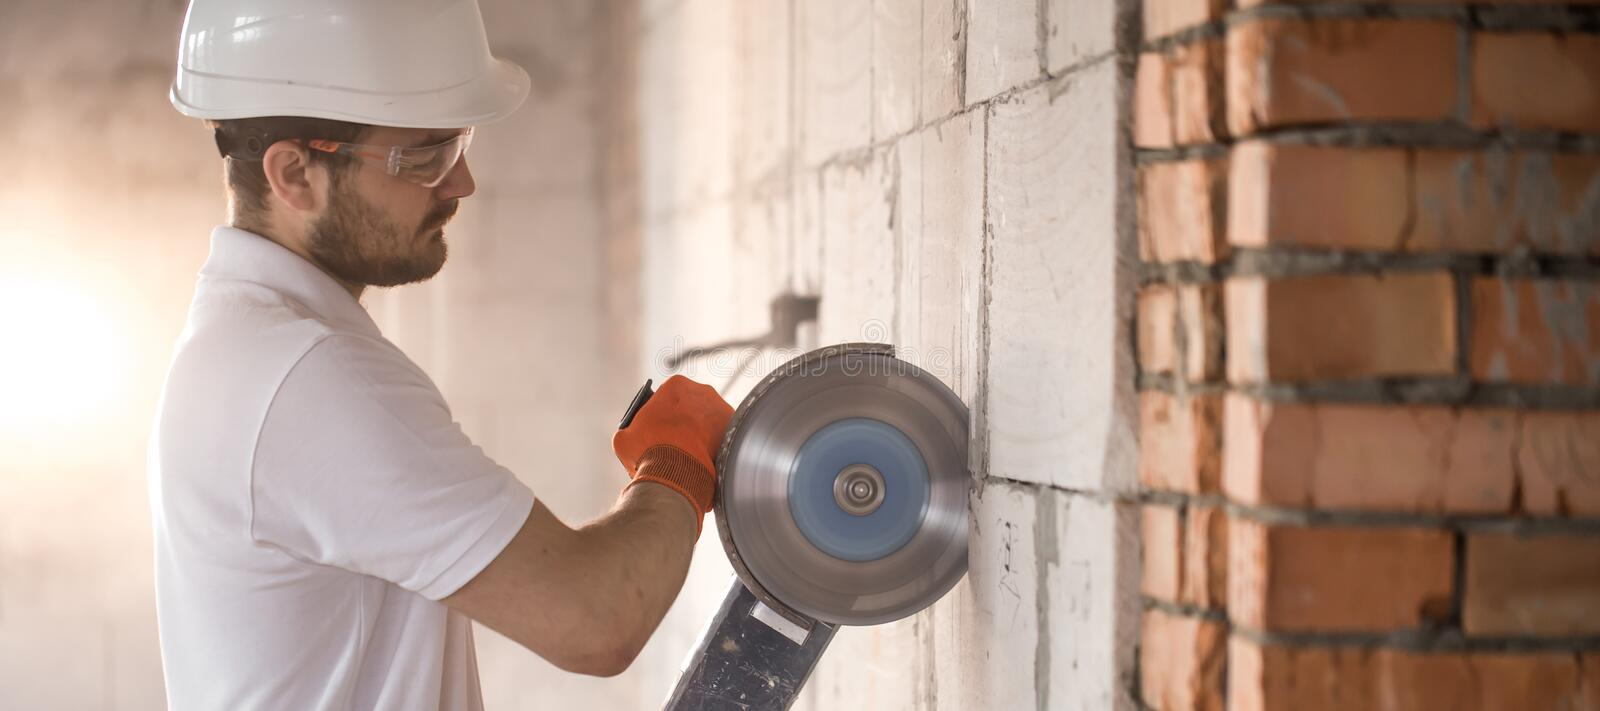 The industrial Builder works with a professional angle grinder to cut bricks and build interior walls. Electrician royalty free stock photos